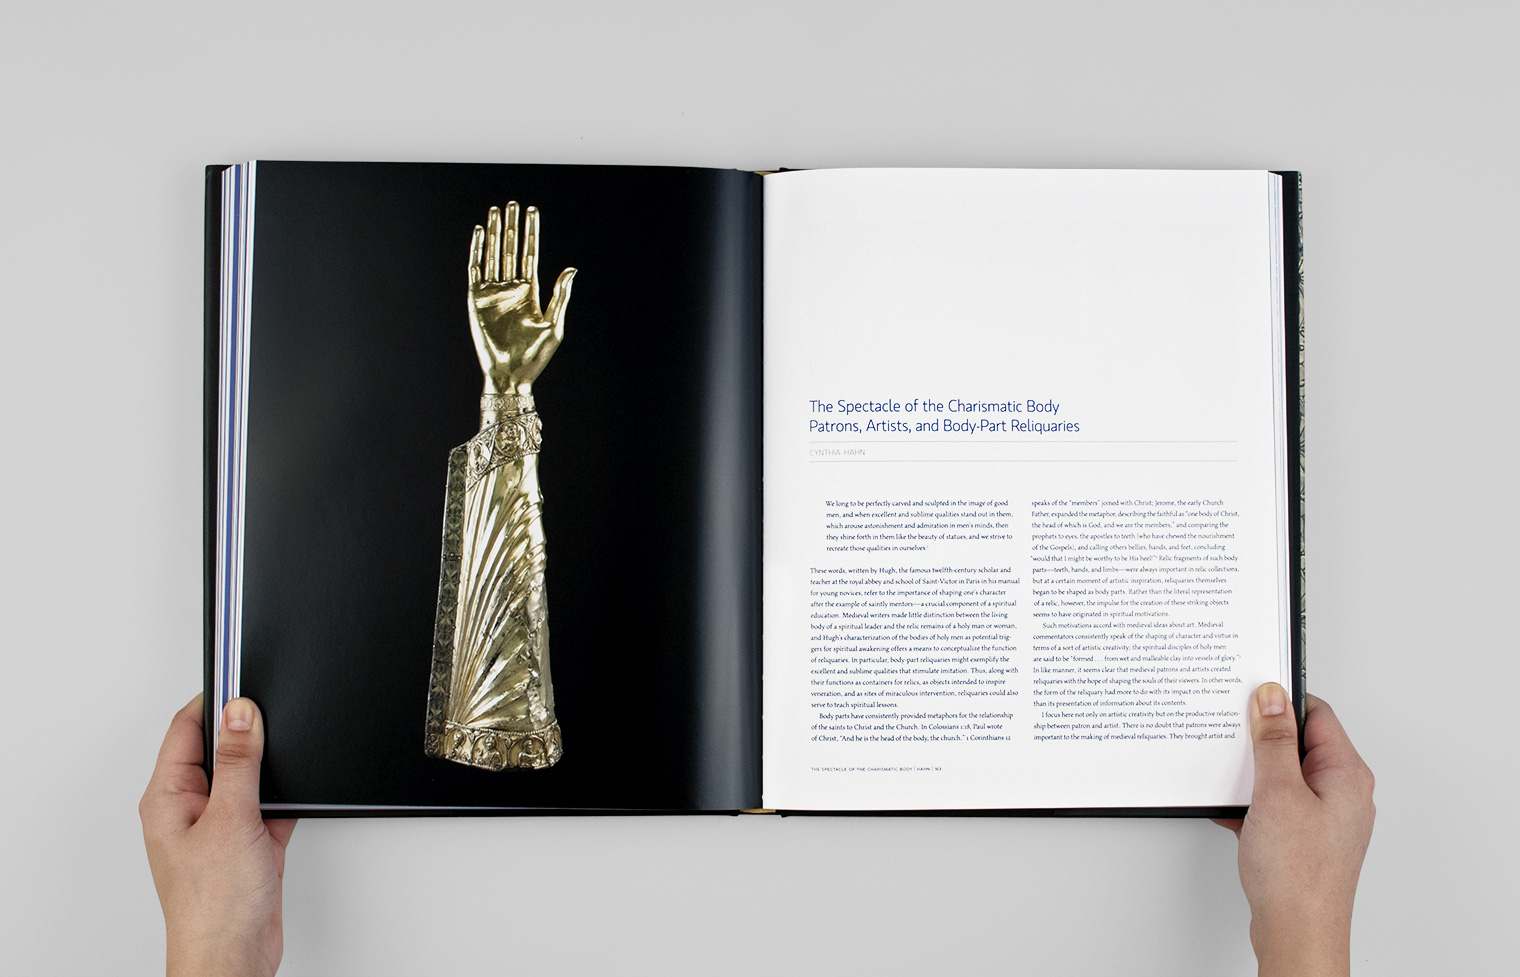 An essay opener featuring a reliquary for the arm bone of an unidentified saint.